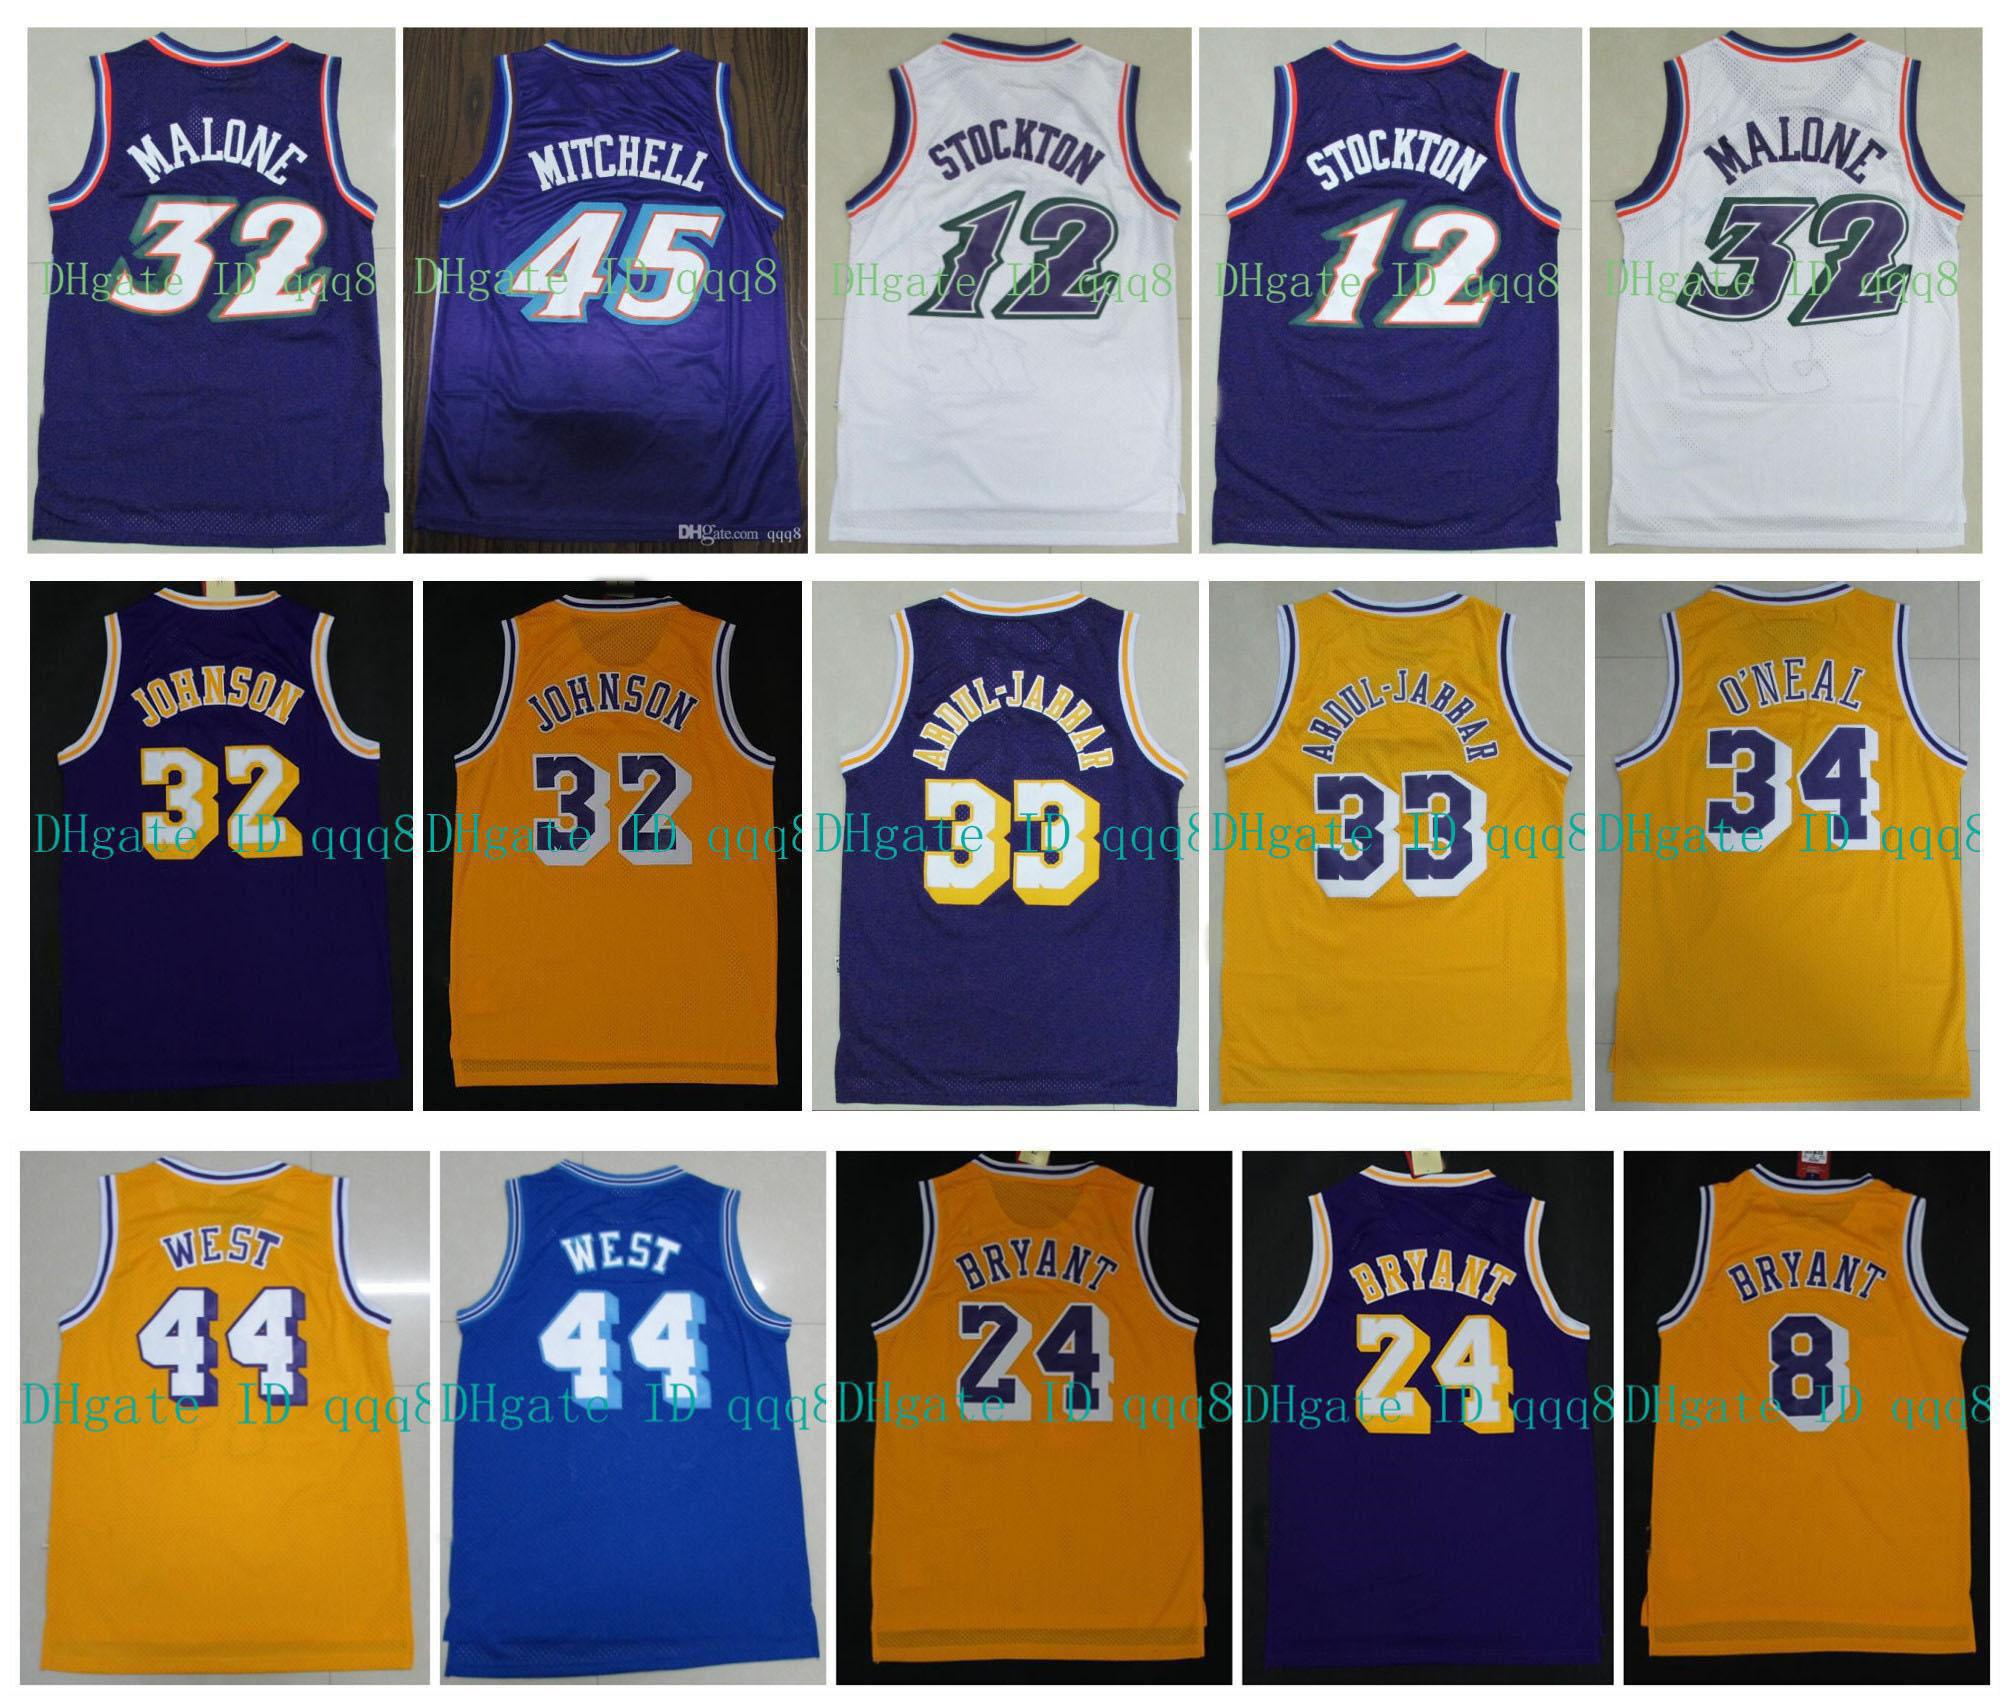 NCAA Basketbol Donovan 45 Mitchell Jersey 32 Magic Johnson Karl 32 Malone John 12 Stockton Jerry 44 West 33 Abdul Jabbar 34 Shaquille Oneal